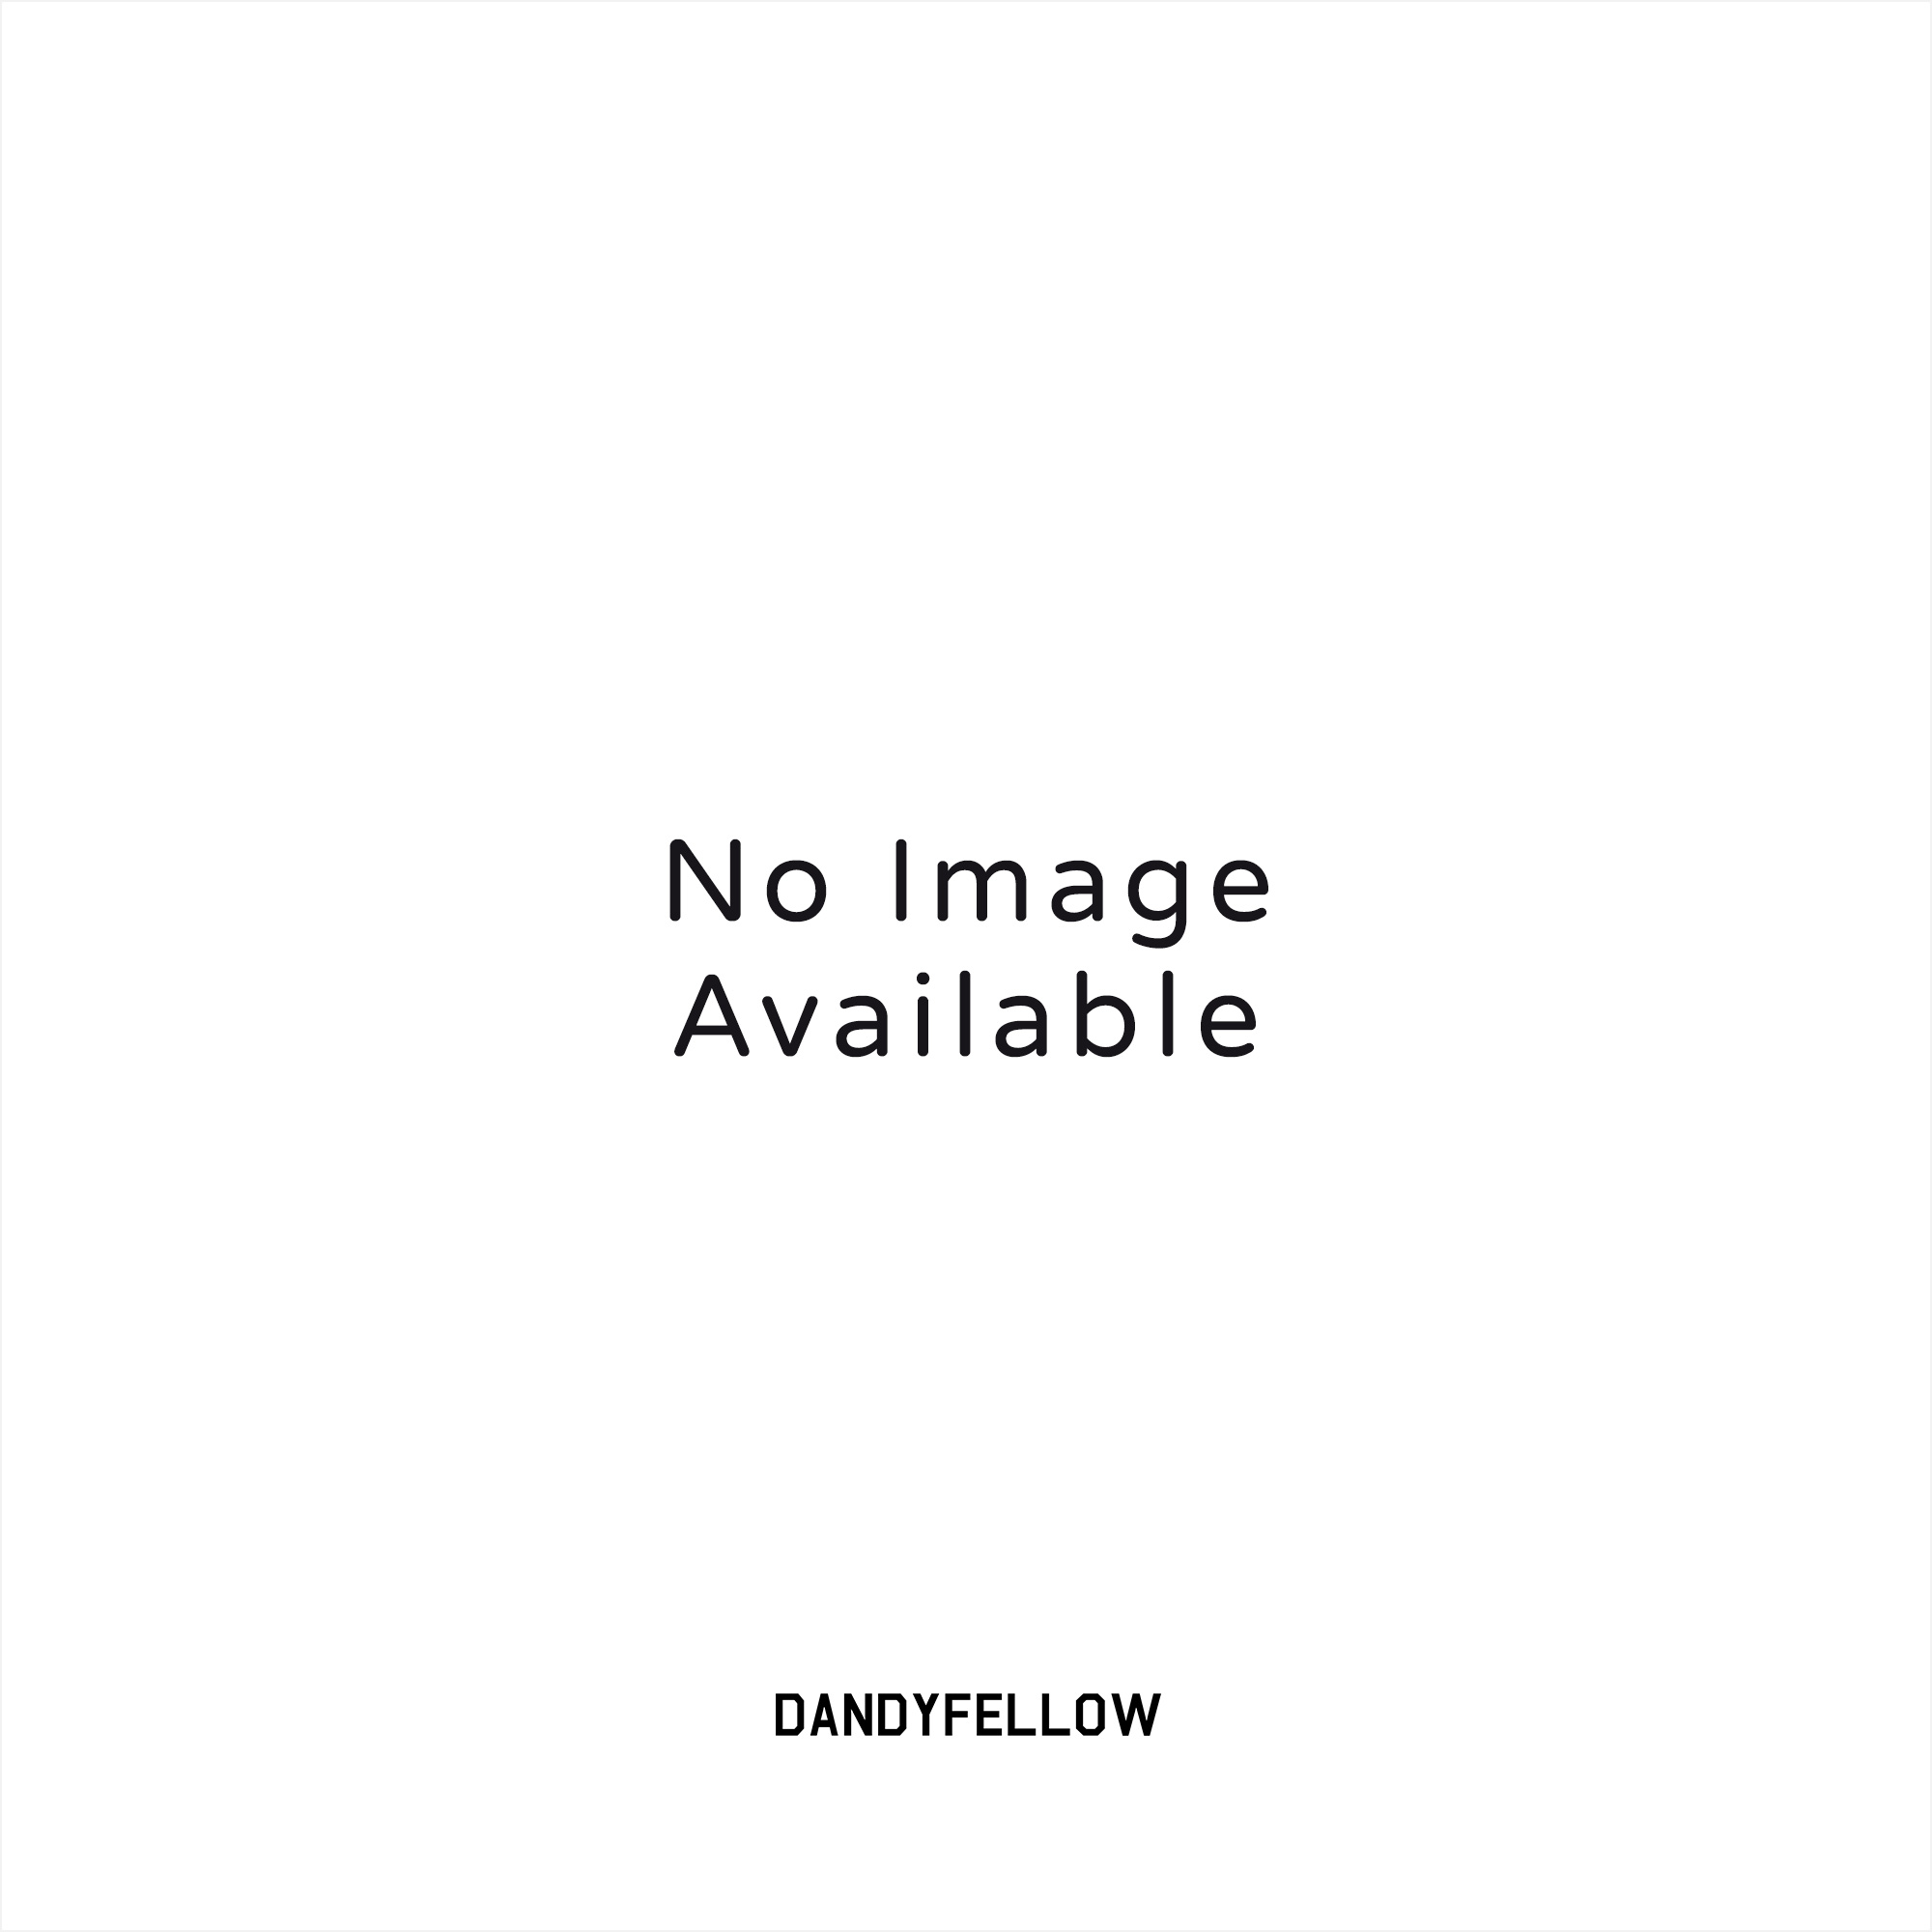 Adidas Originals High Beanie (Green Night) at Dandy Fellow 23be59f68e0